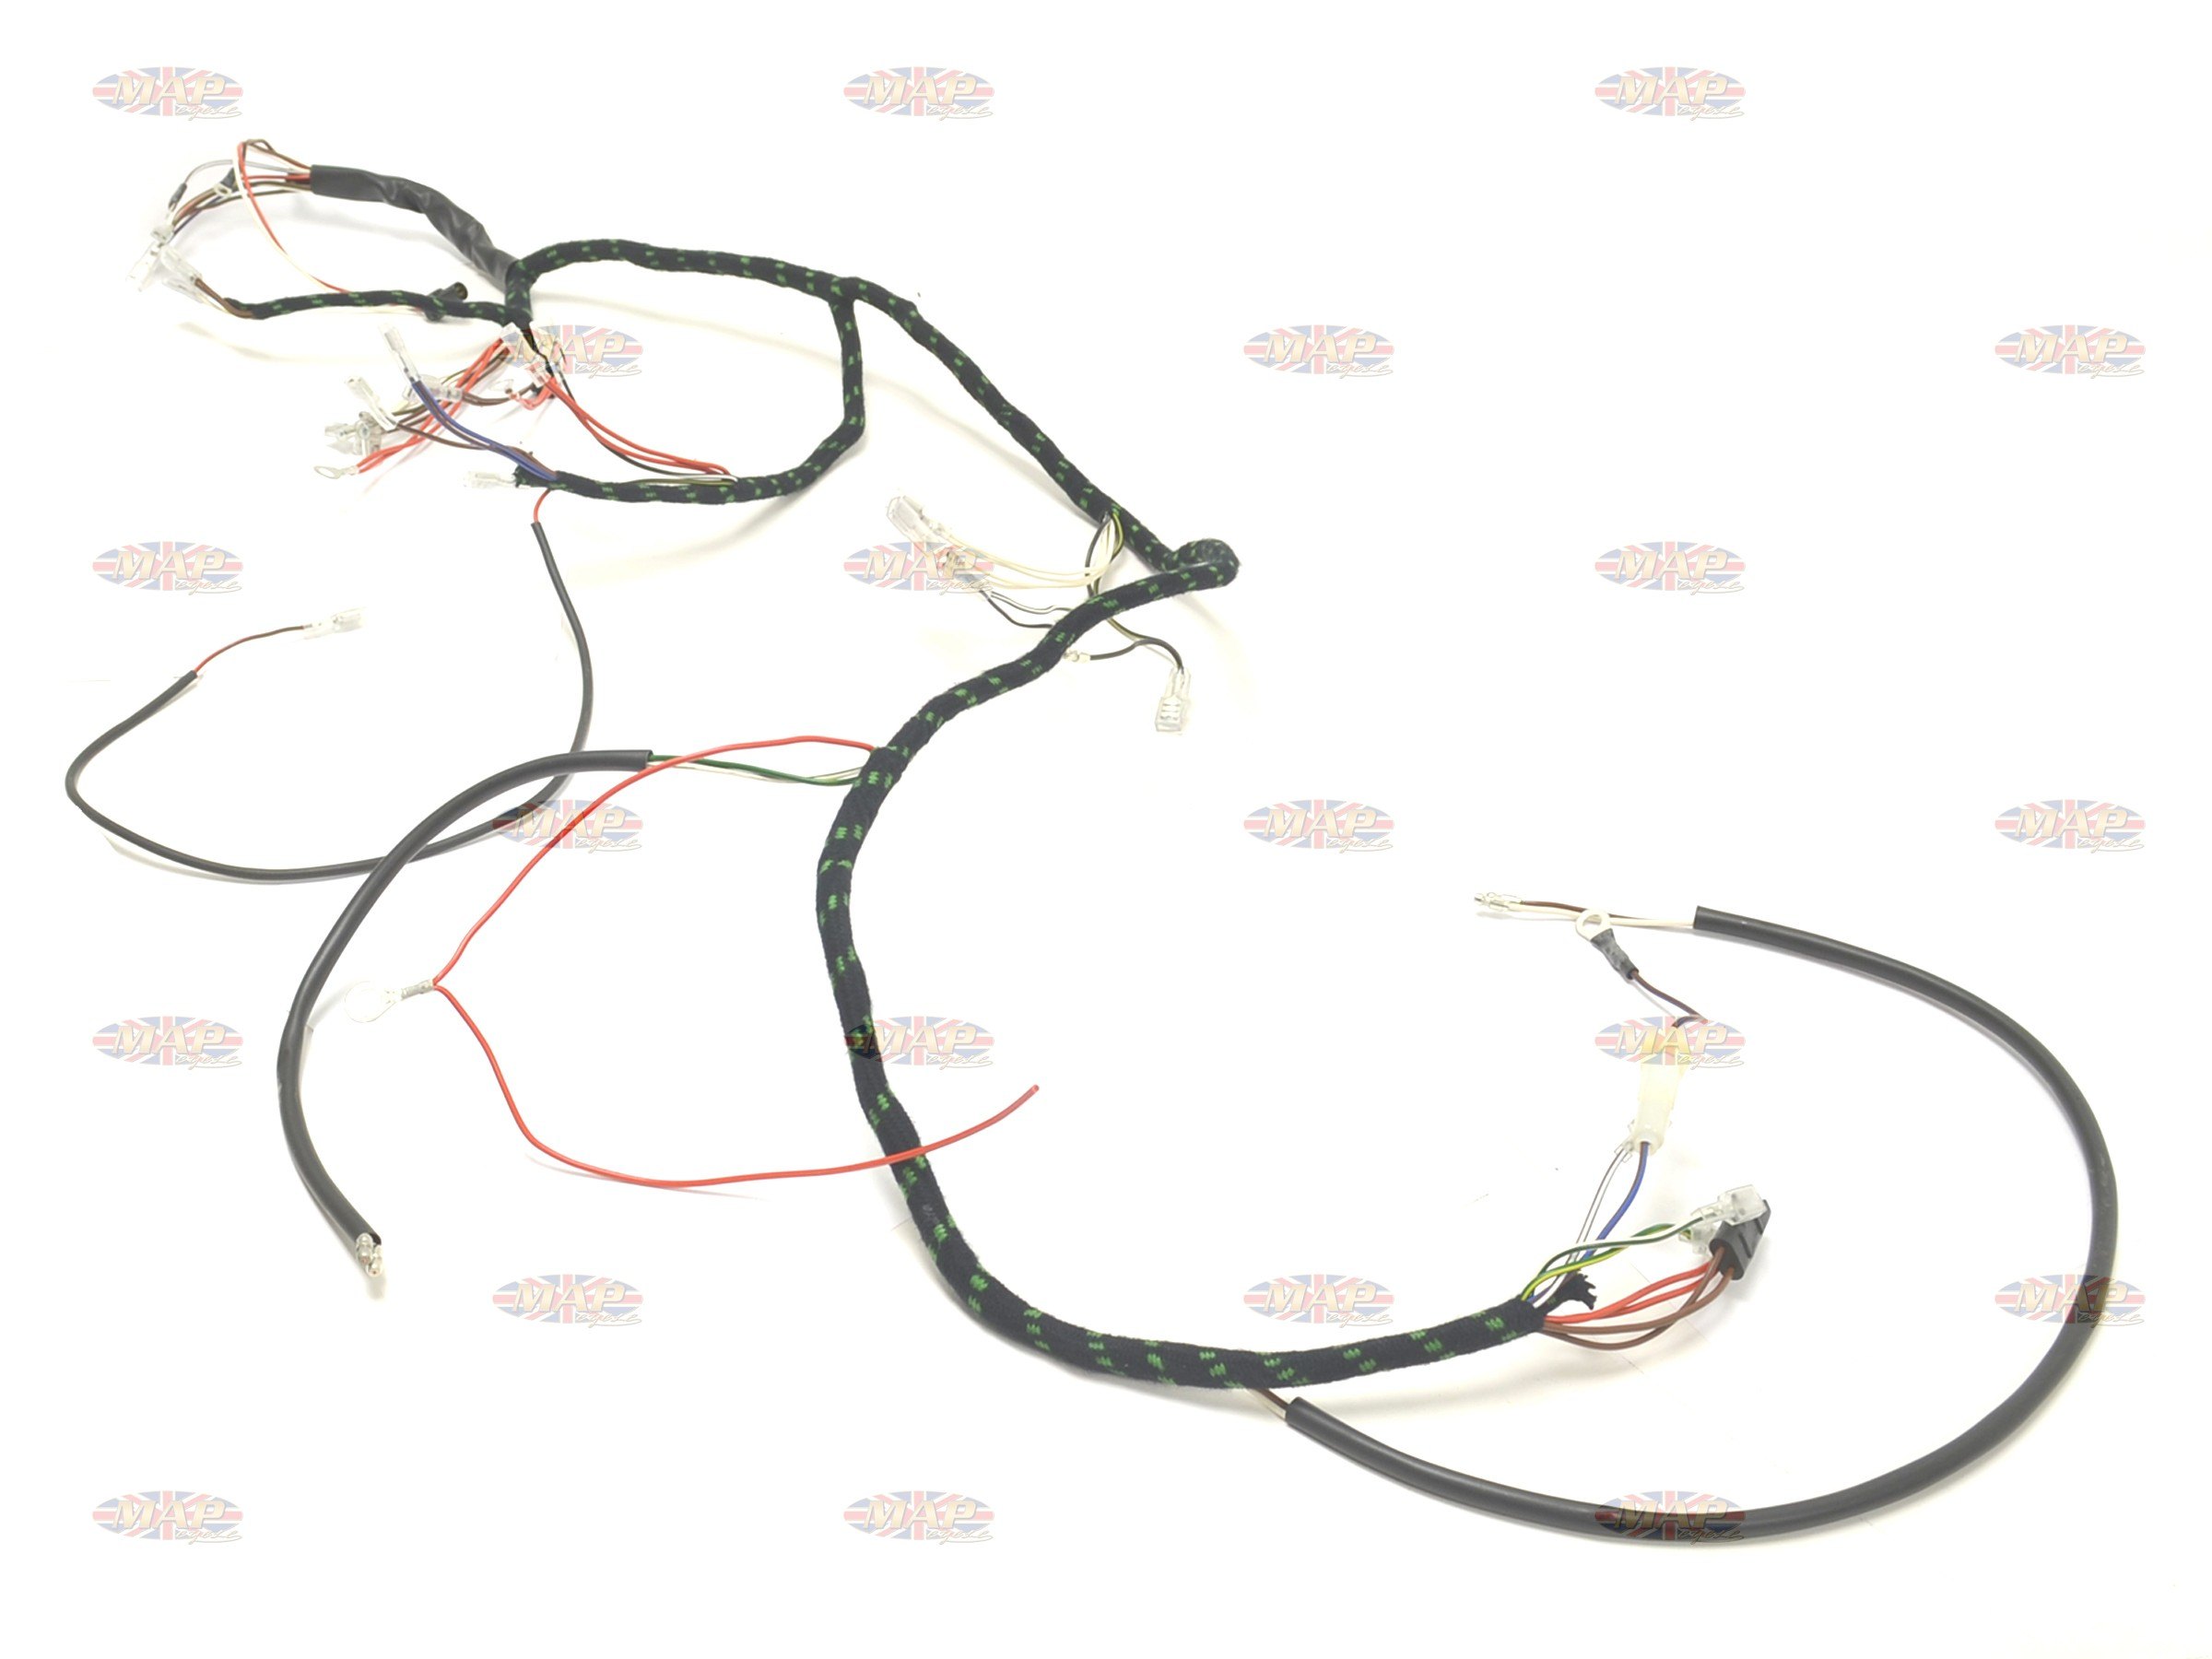 tr6 wiring harness   18 wiring diagram images